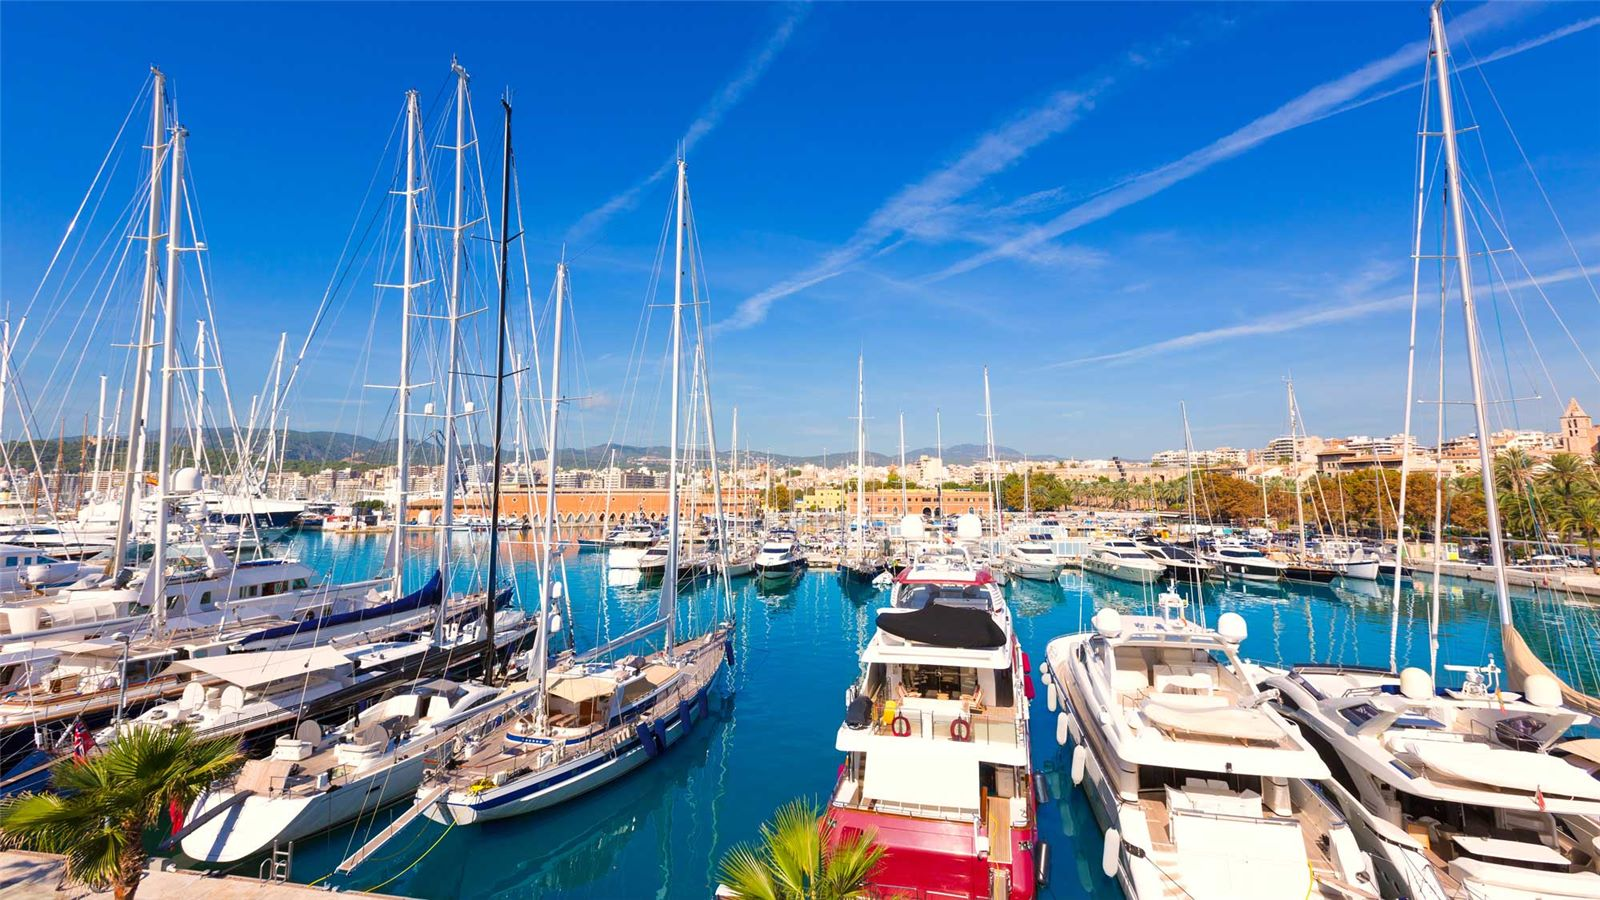 Balearic islands port